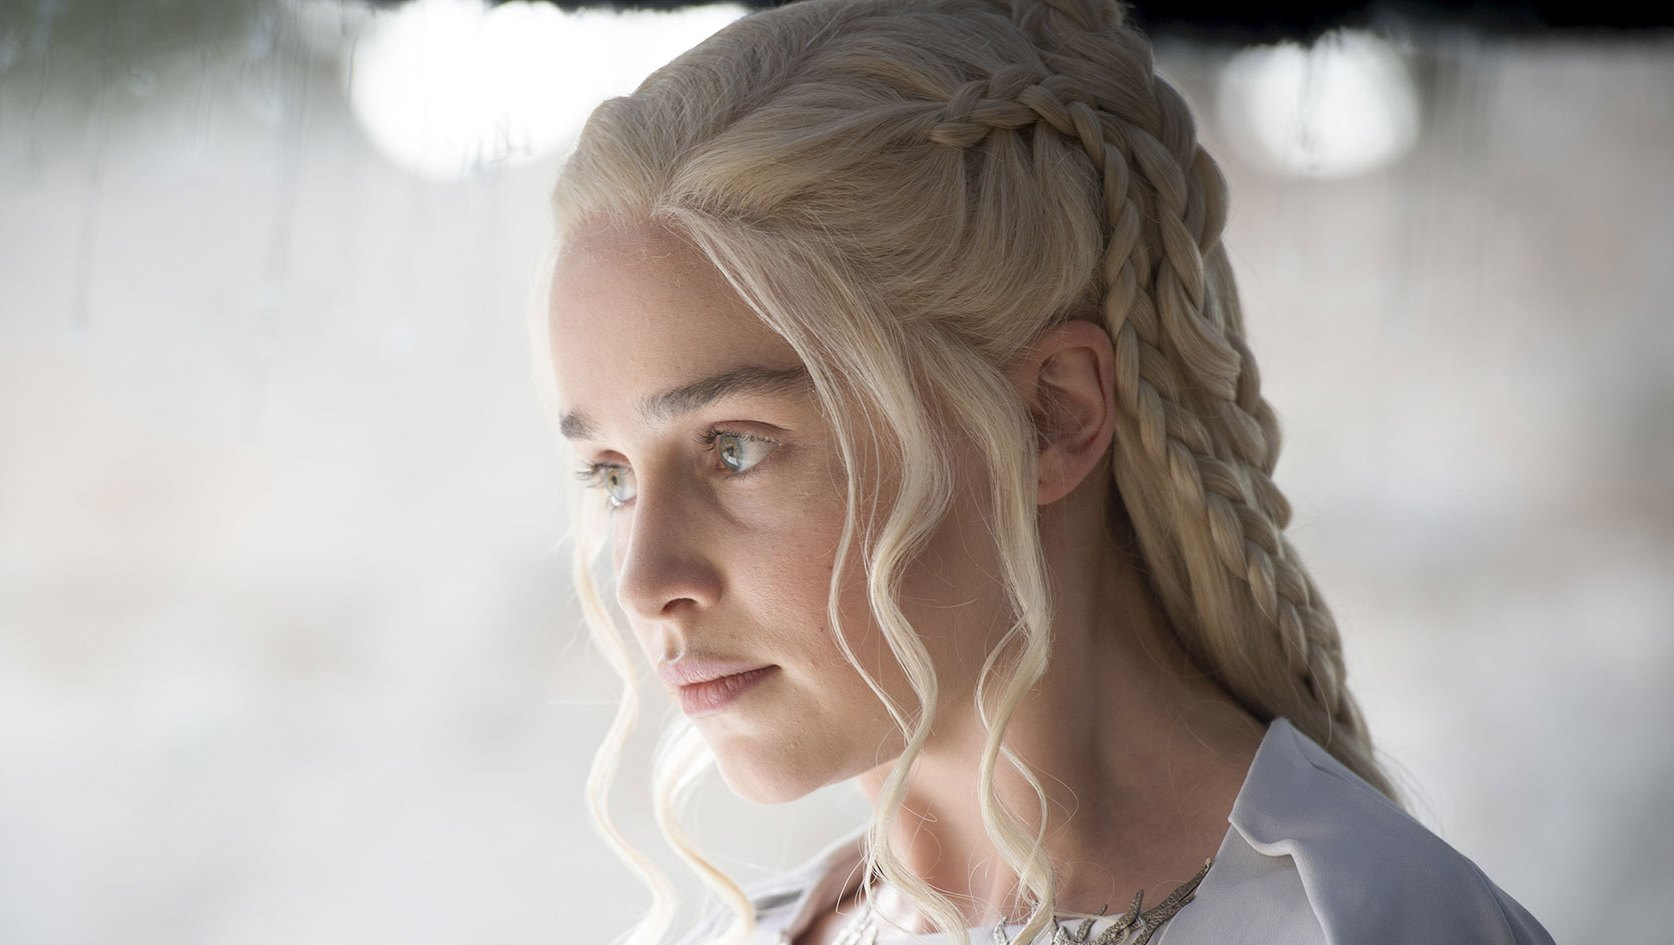 Game of Thrones braids hairstyles hair Emilia Clarke